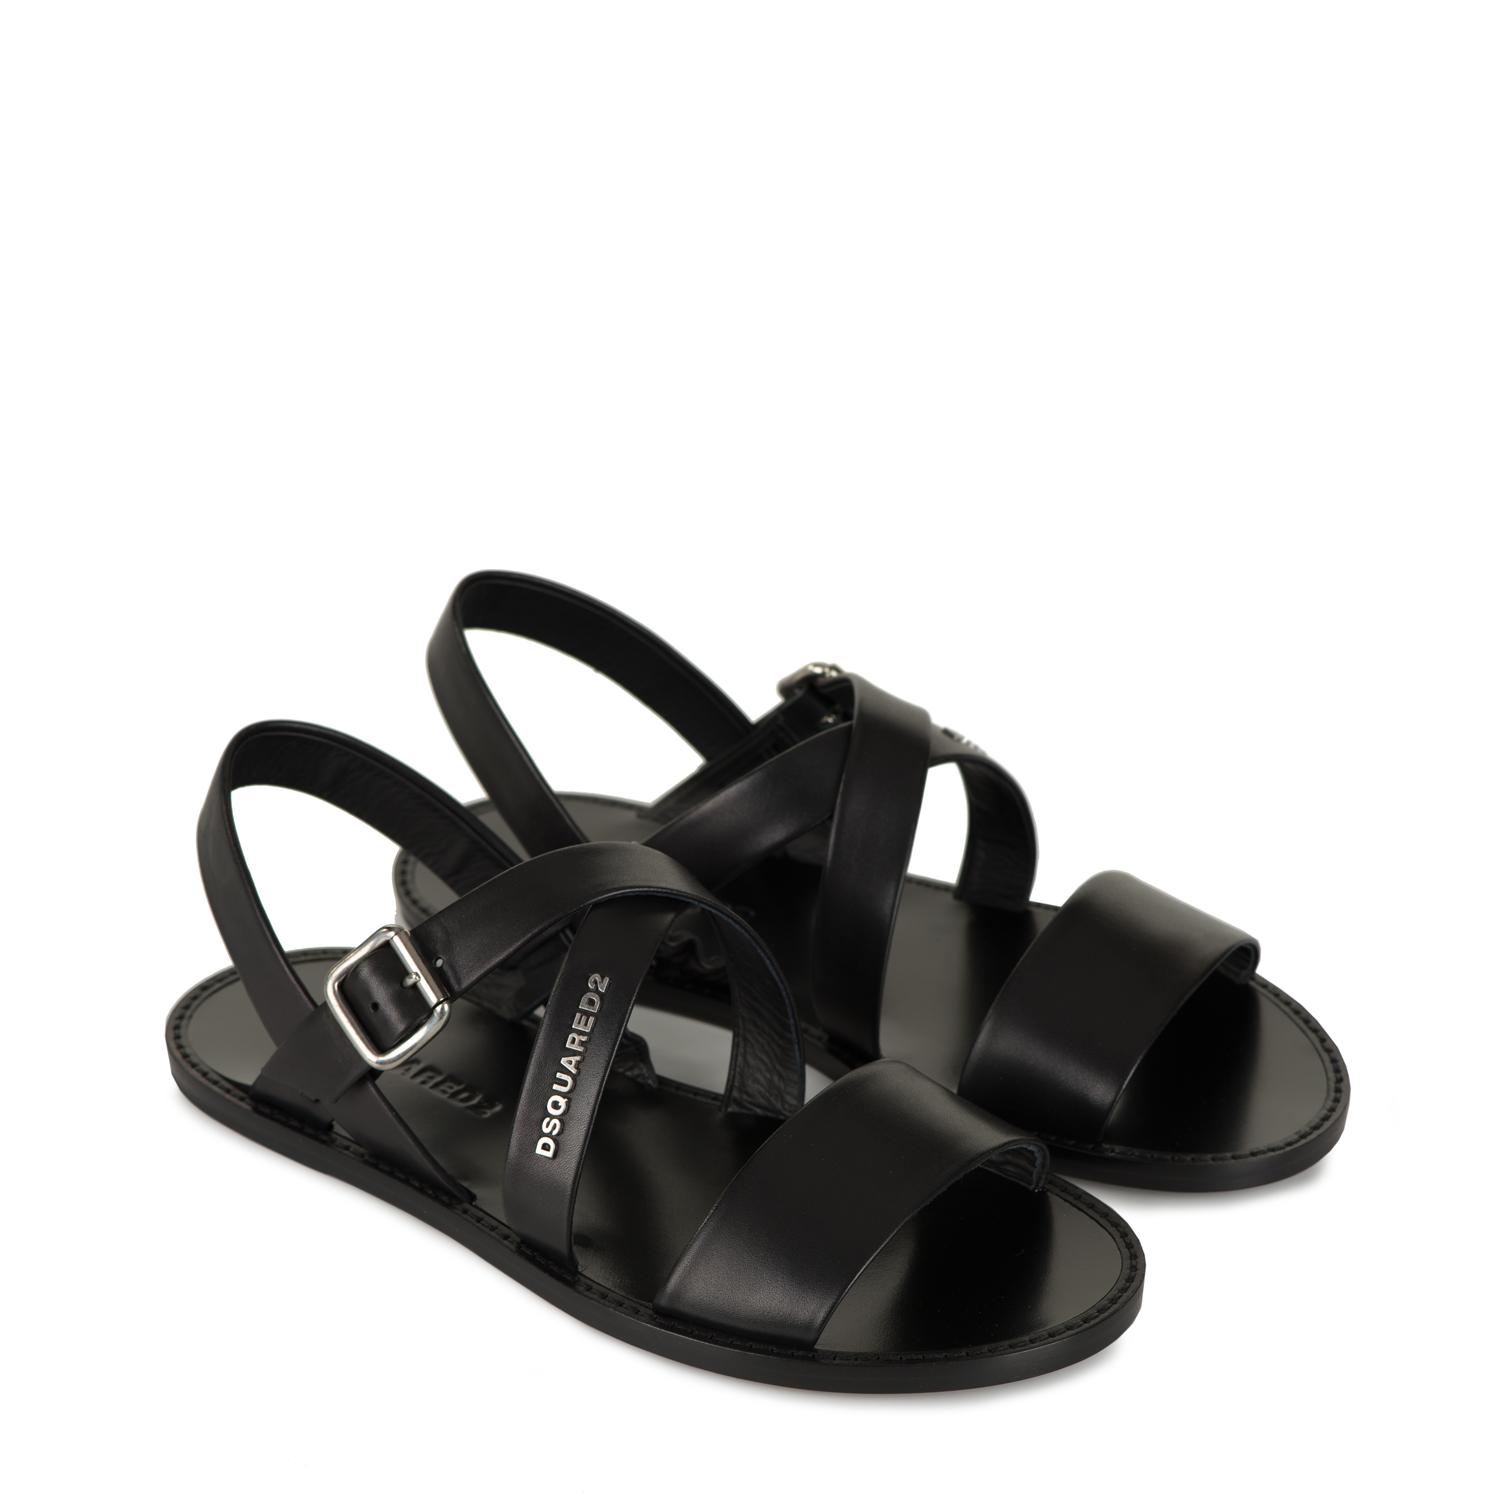 Image Result For Lv Mens Sandals